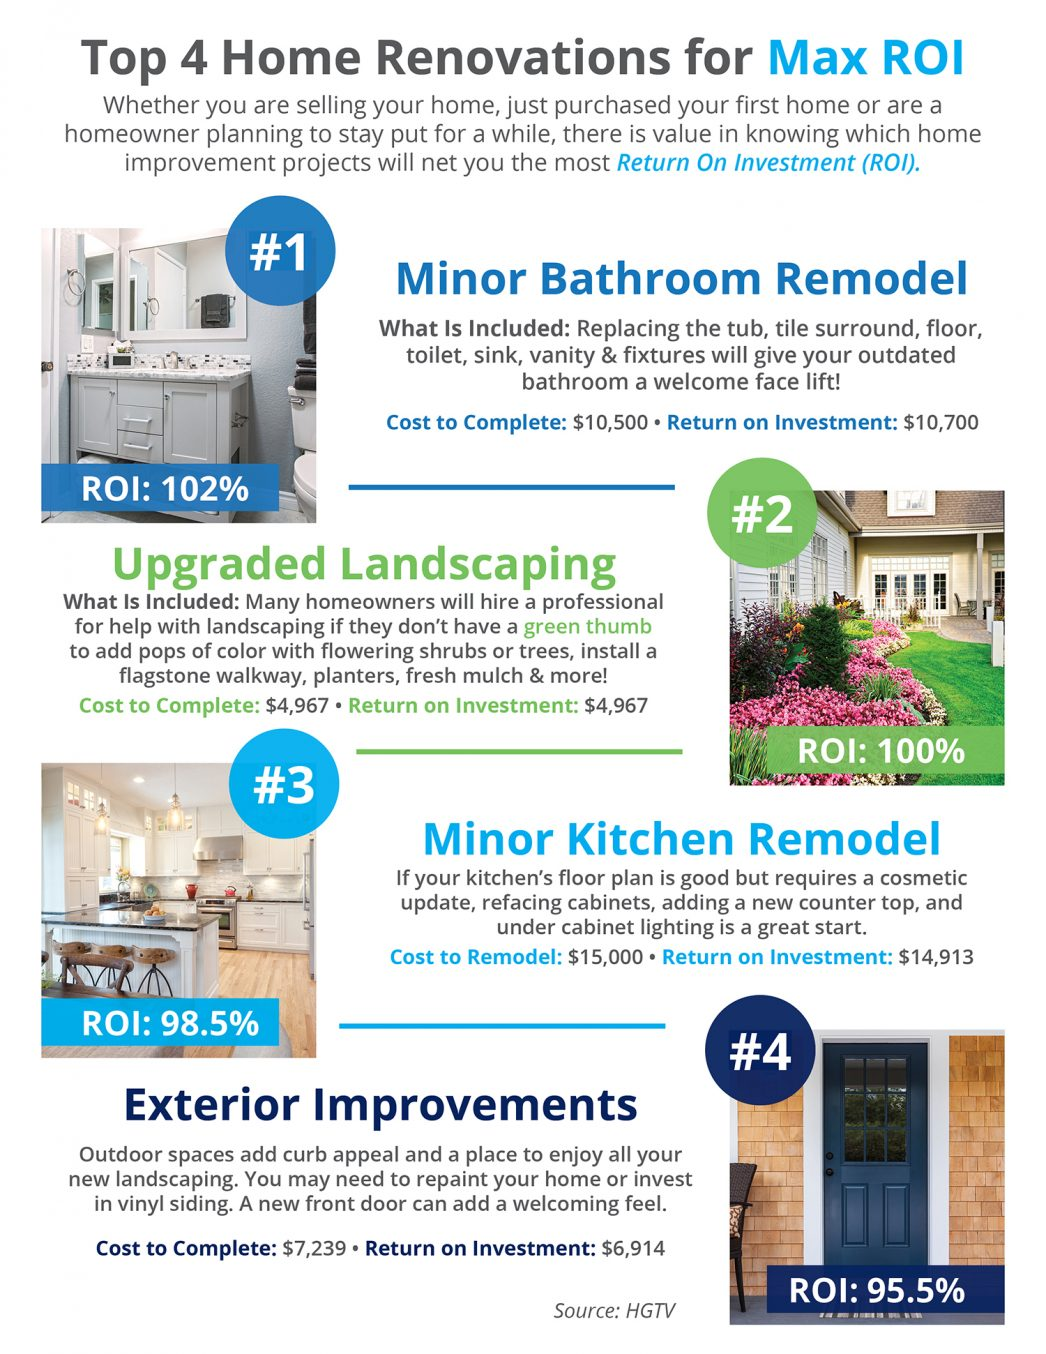 Top 4 Home Renovations for Max ROI [INFOGRAPHIC] | MyKCM